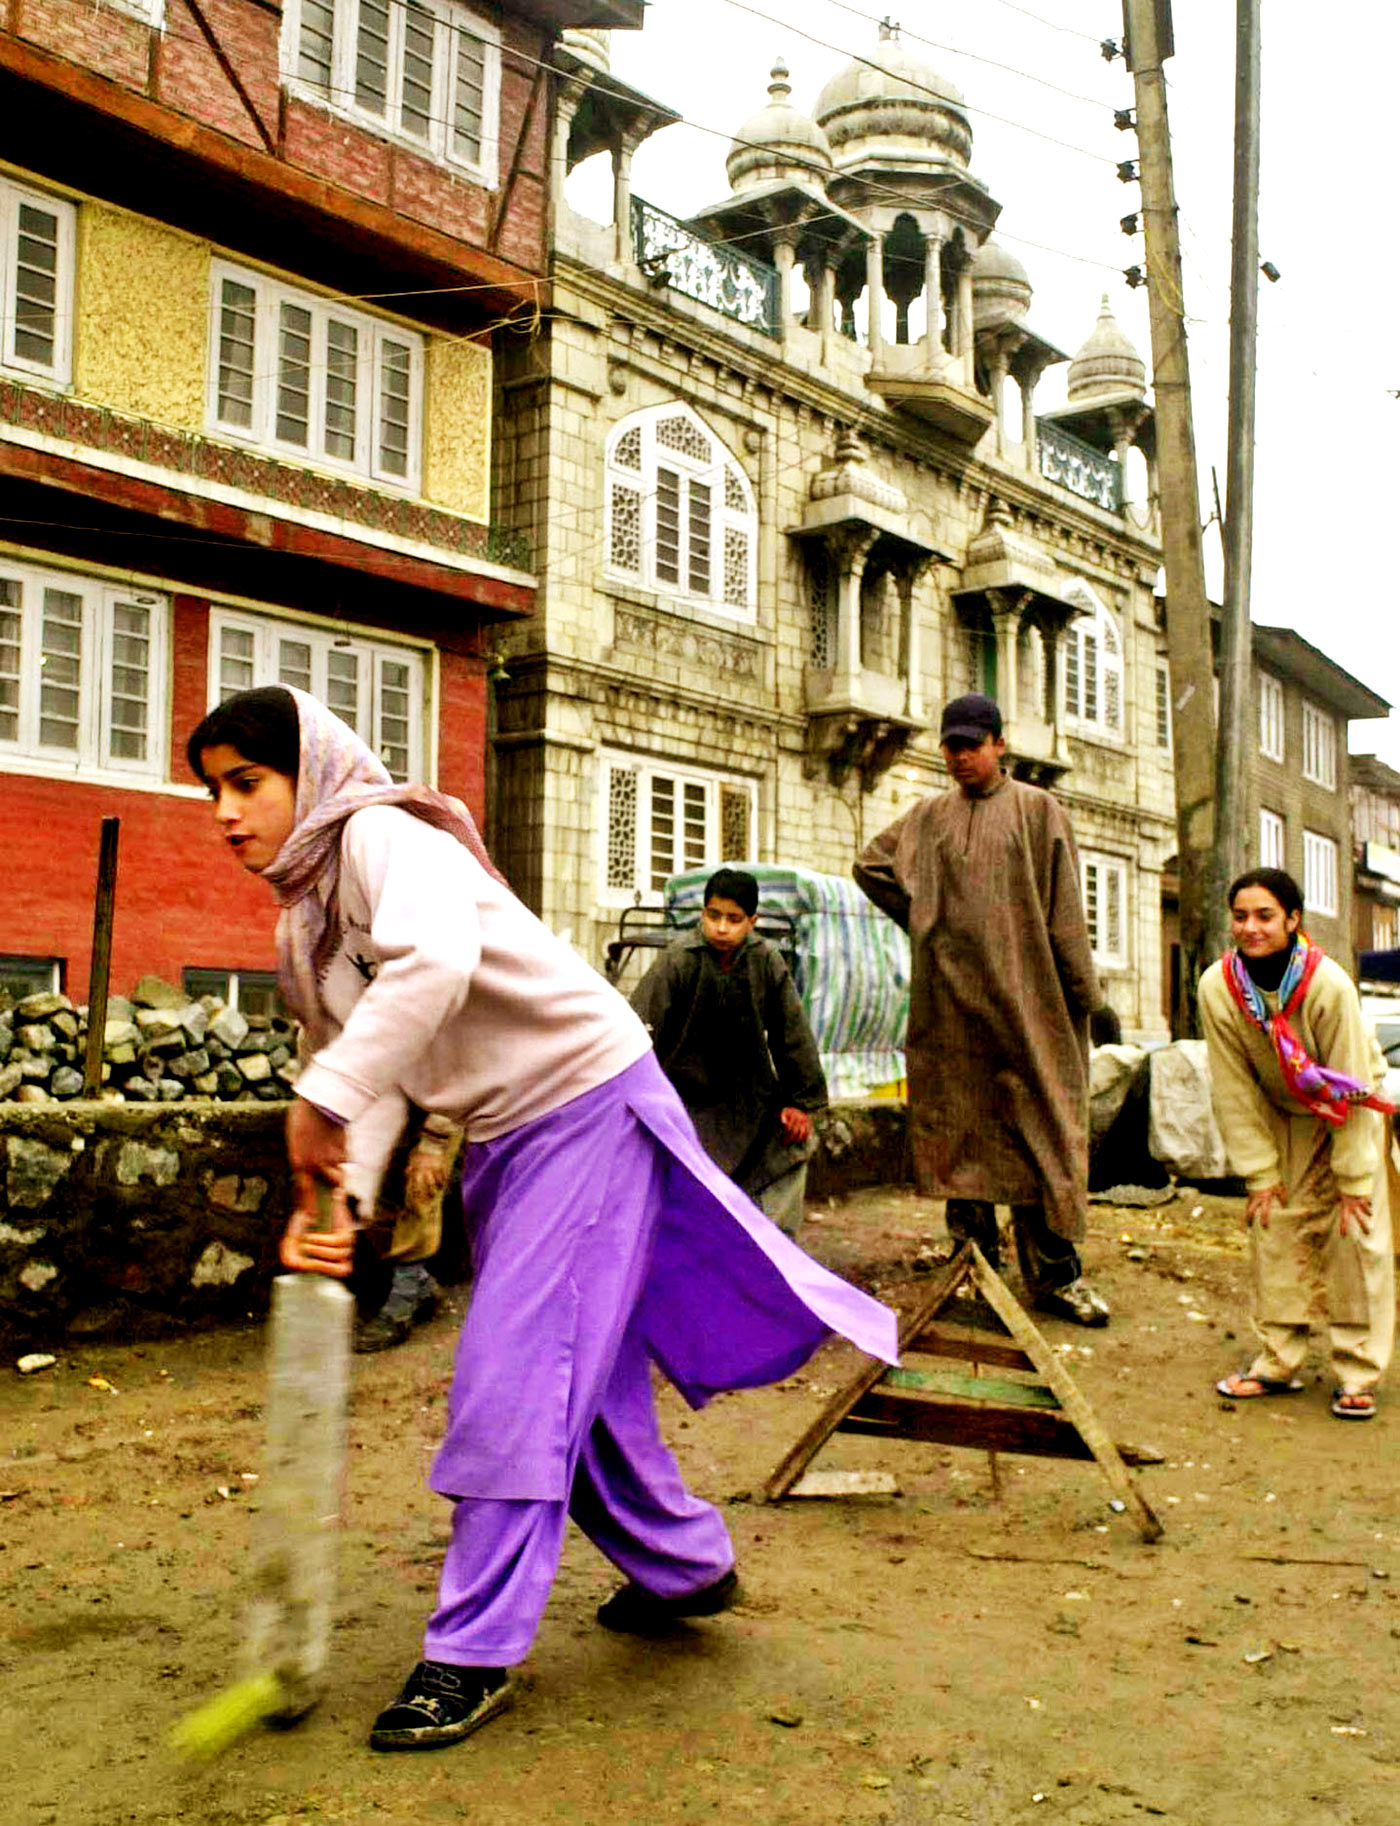 The roots of the game hold strong in Kashmir but the structure they hold up is shaky